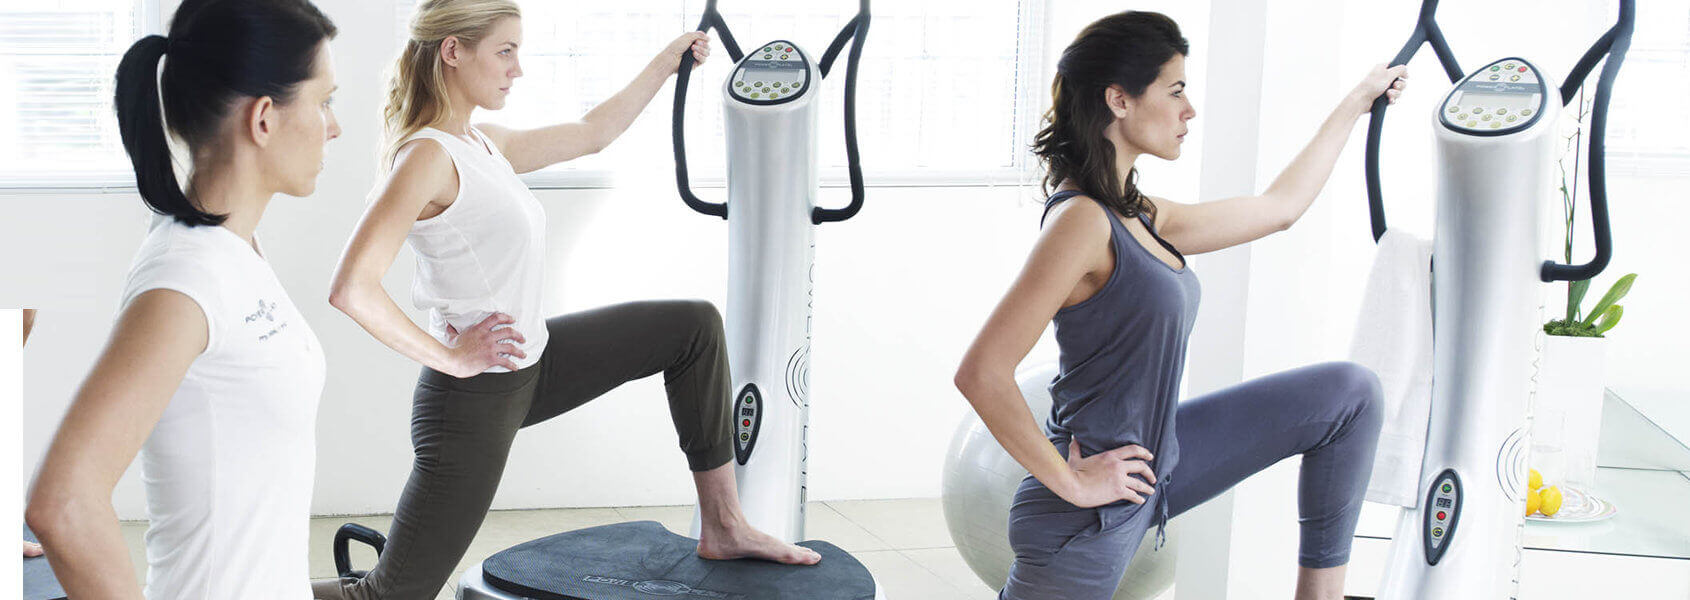 Power Plate training in der Gruppe